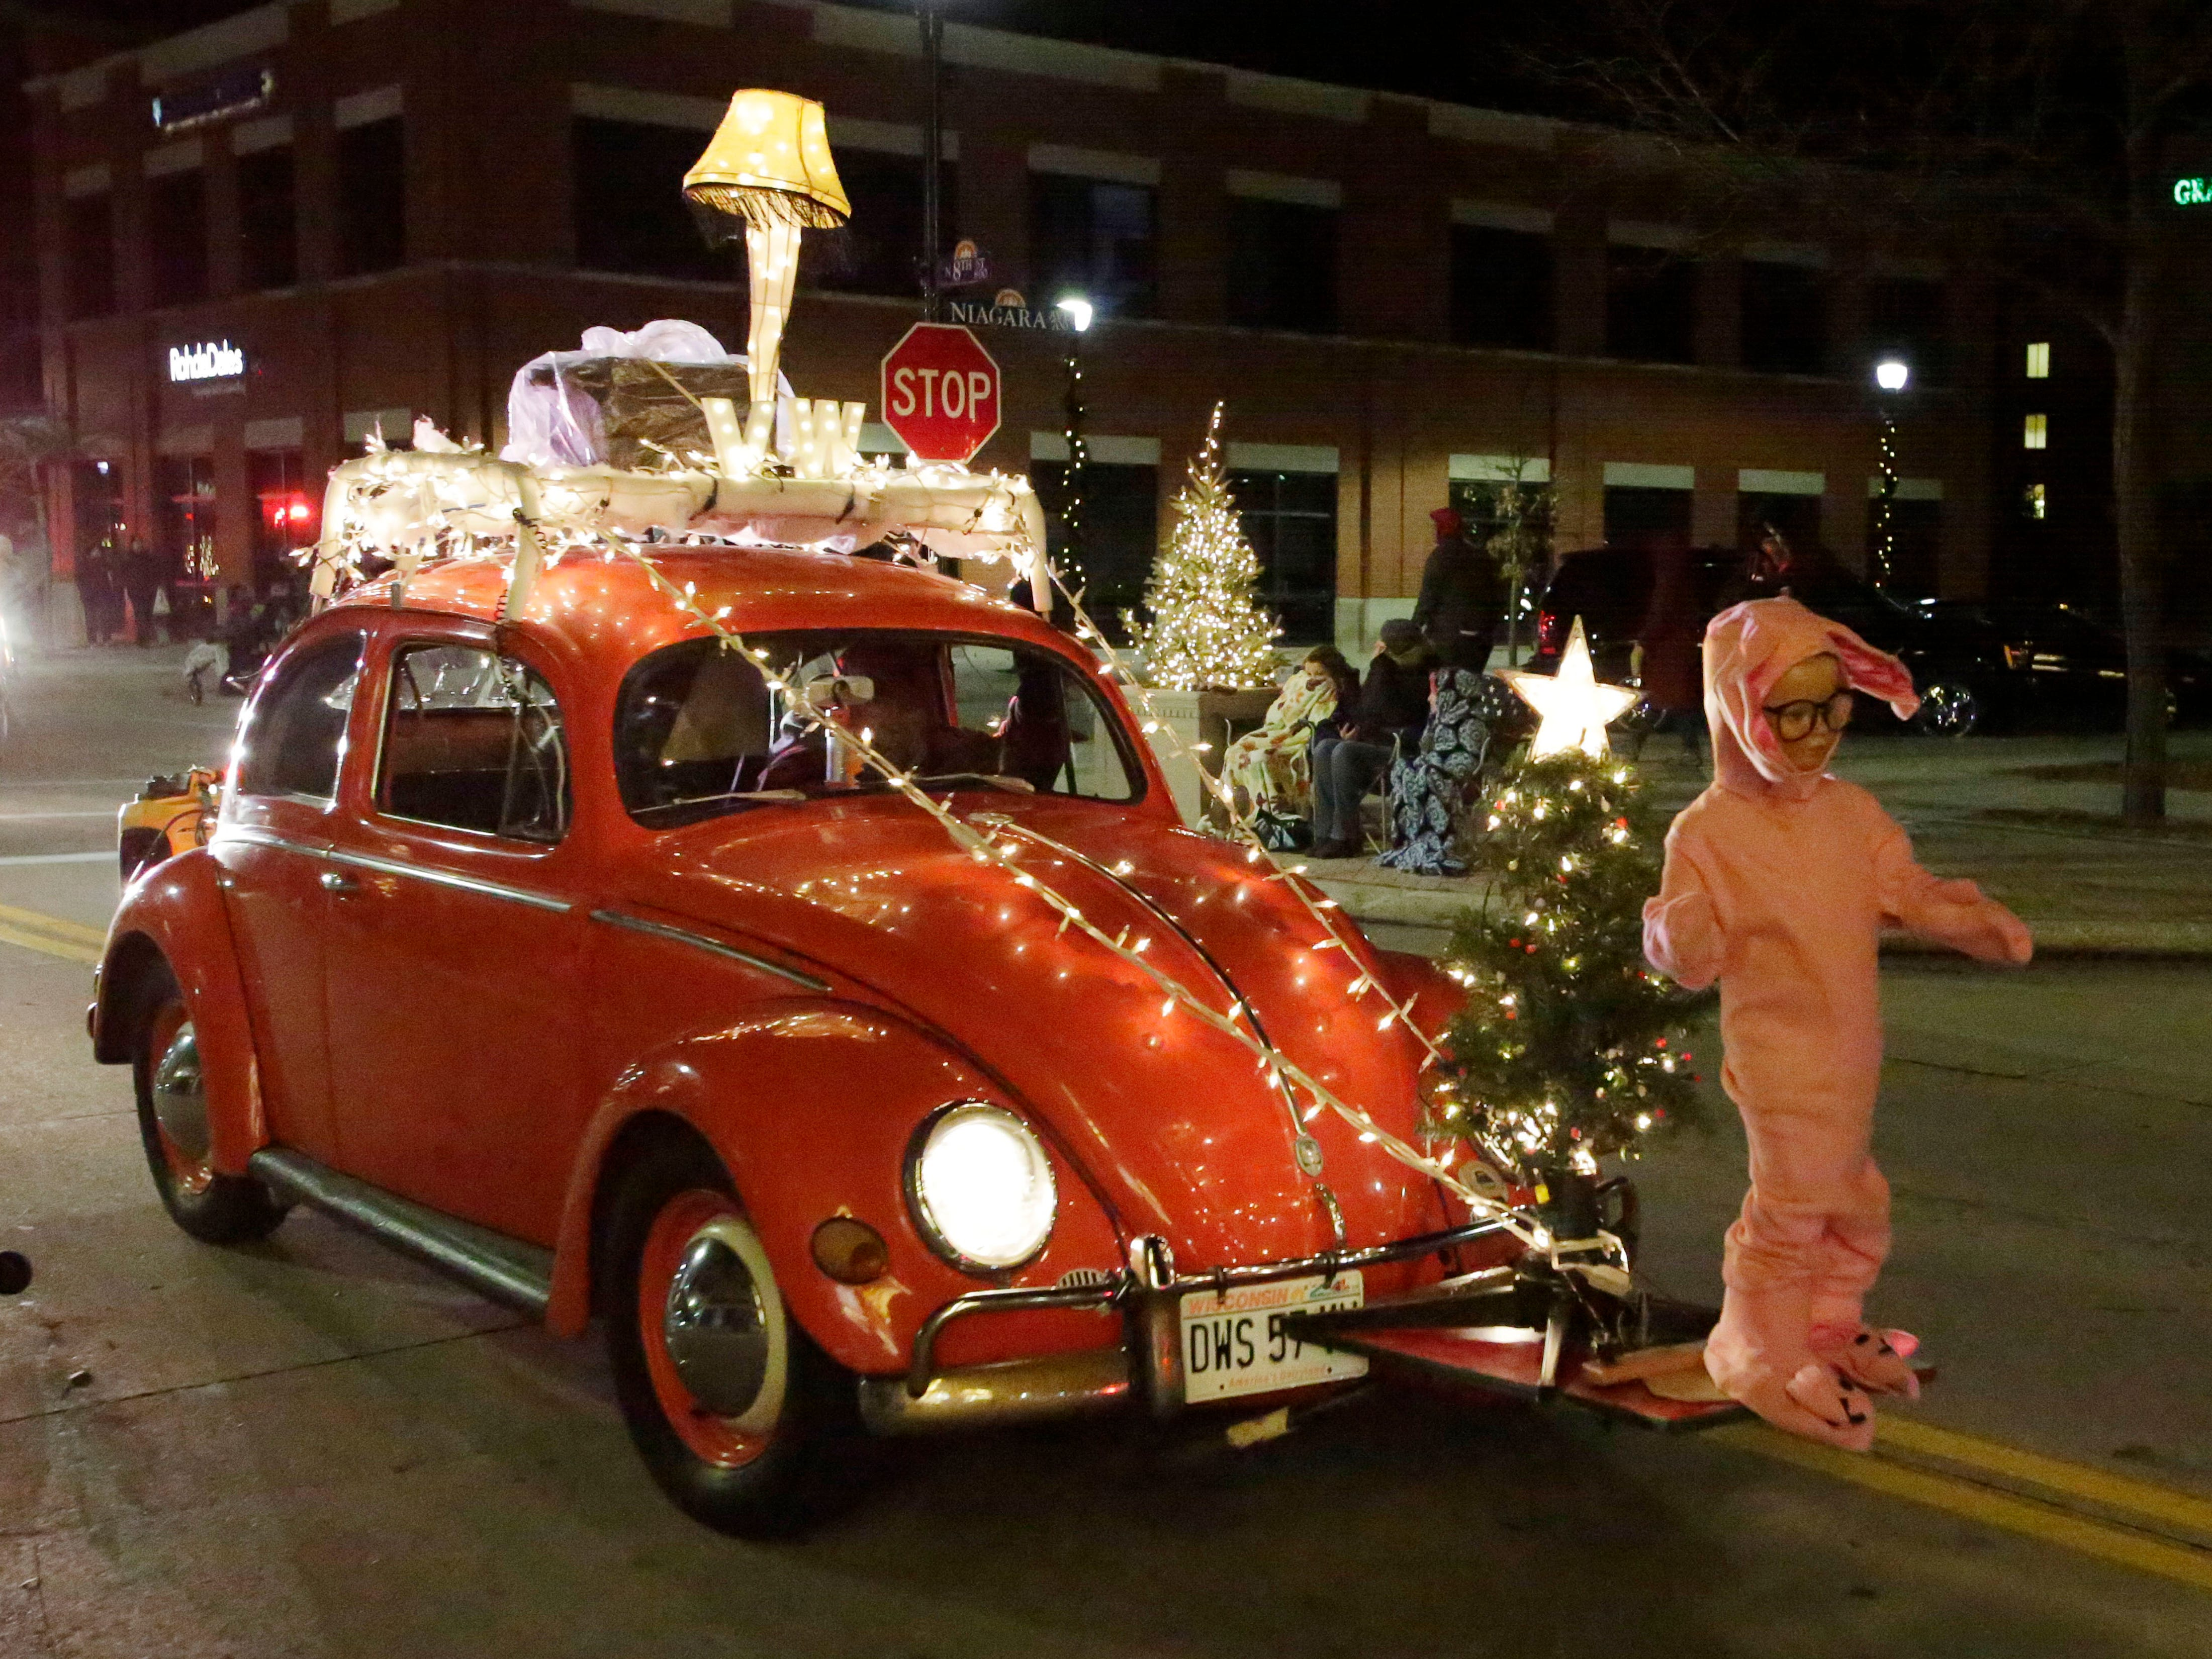 Sheboygan Falls' David Weinhold rolls his Christmas Story themed Volkswagen at the 26th Annual Jaycees Holiday Parade, Sunday, November 25, 2018 in Sheboygan, Wis. His Volkswagen Club of Sheboygan entry came in second place in the non profit division.